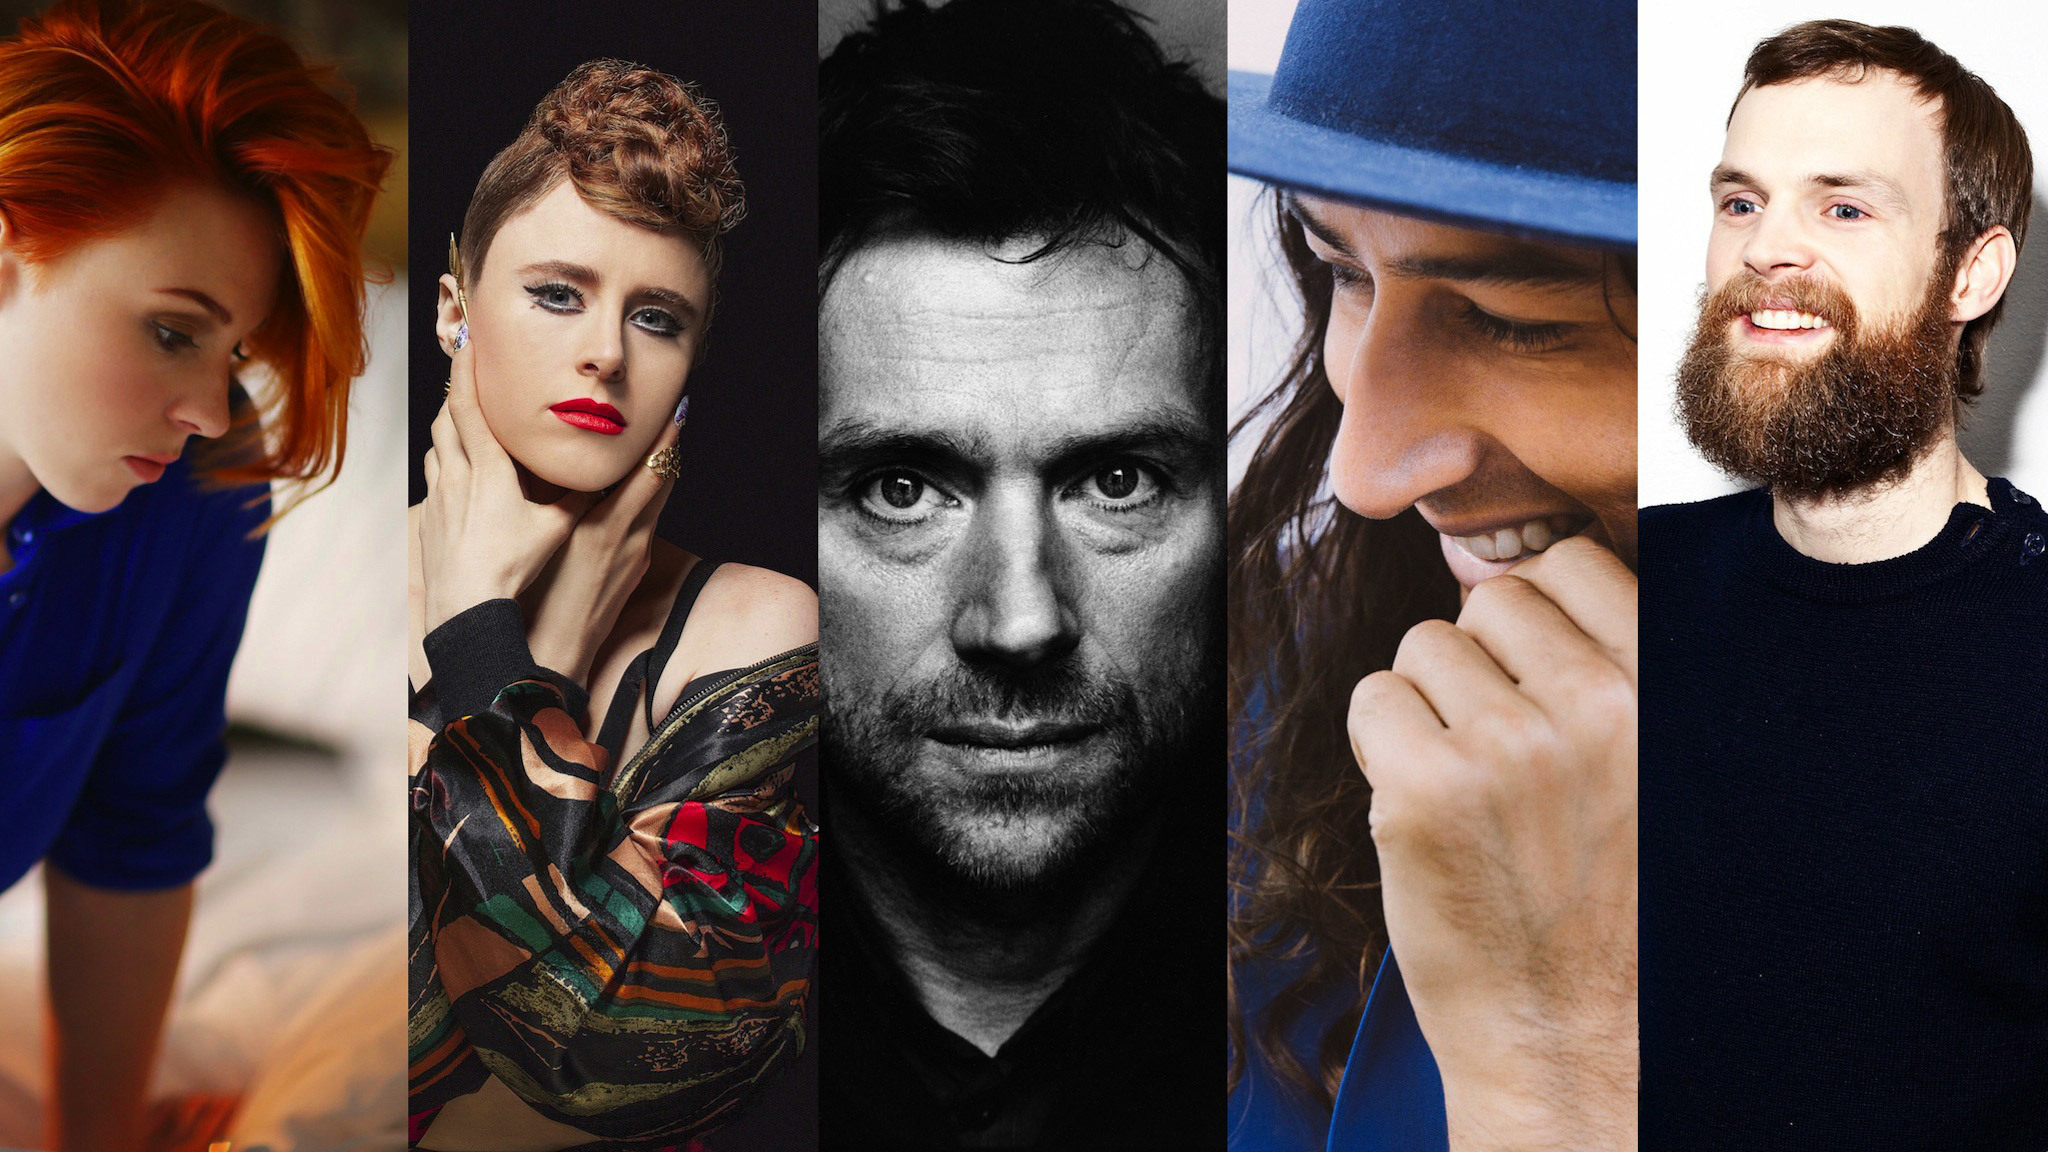 The 50 best songs of 2014